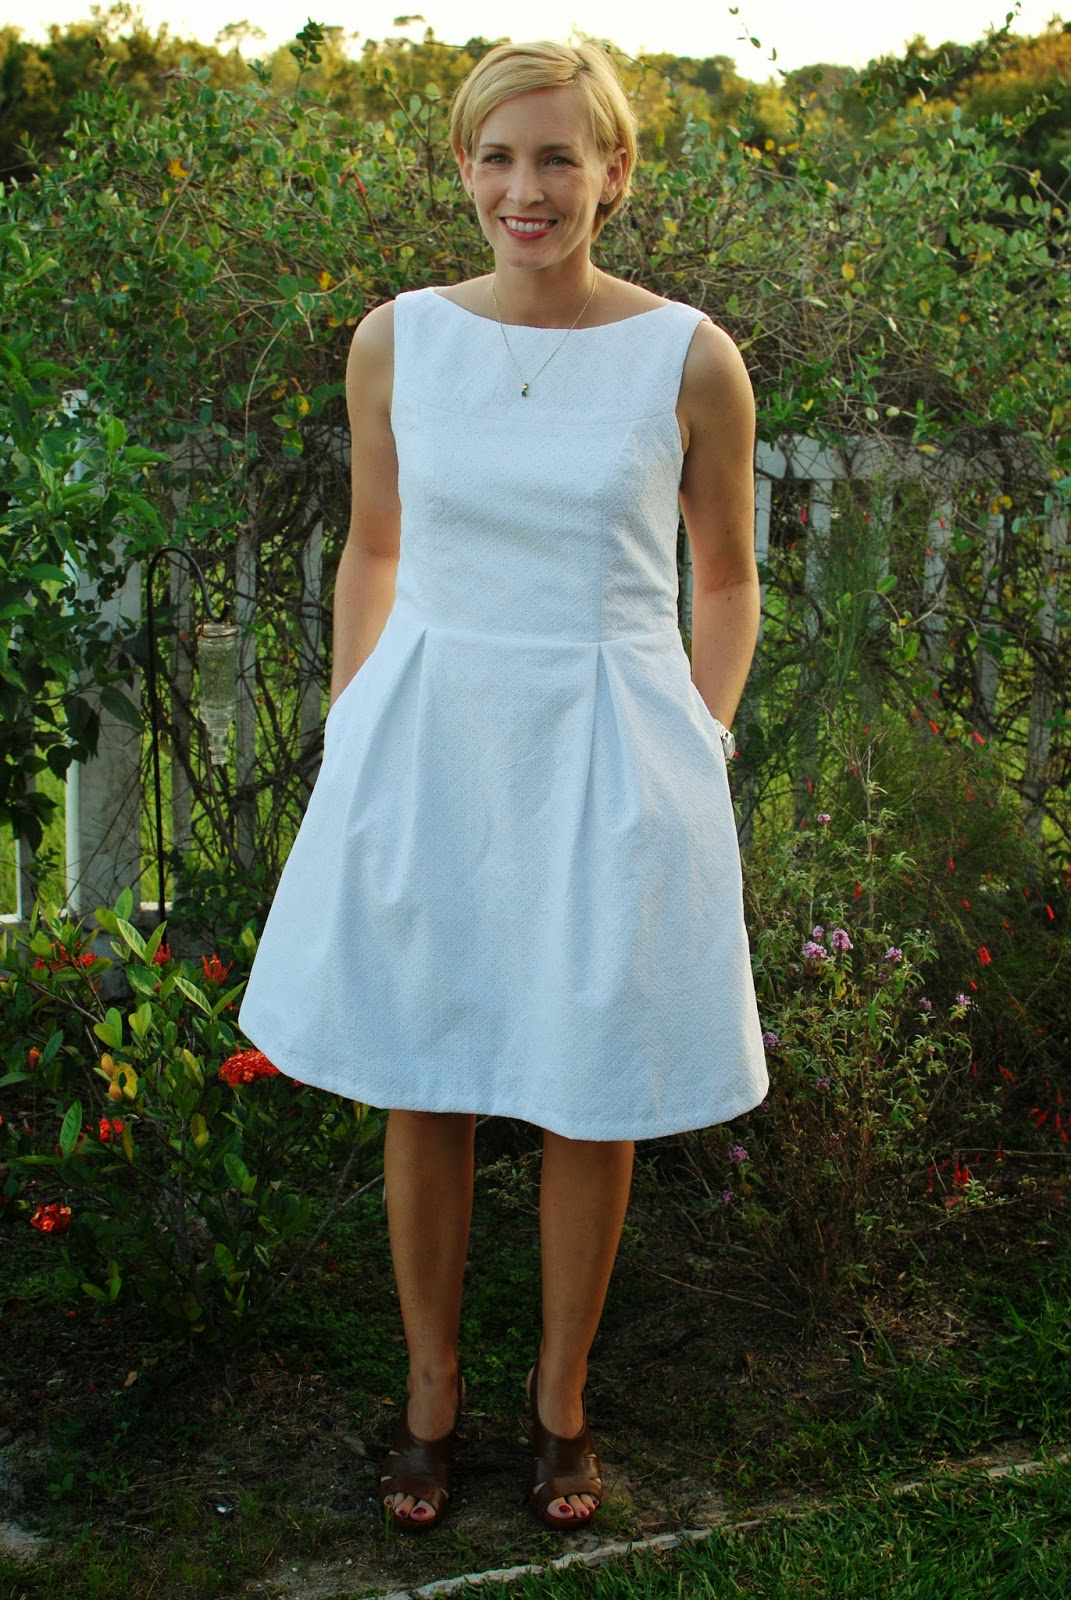 SouthShore Handmade: Marbella Dress Pattern Review and Giveaway